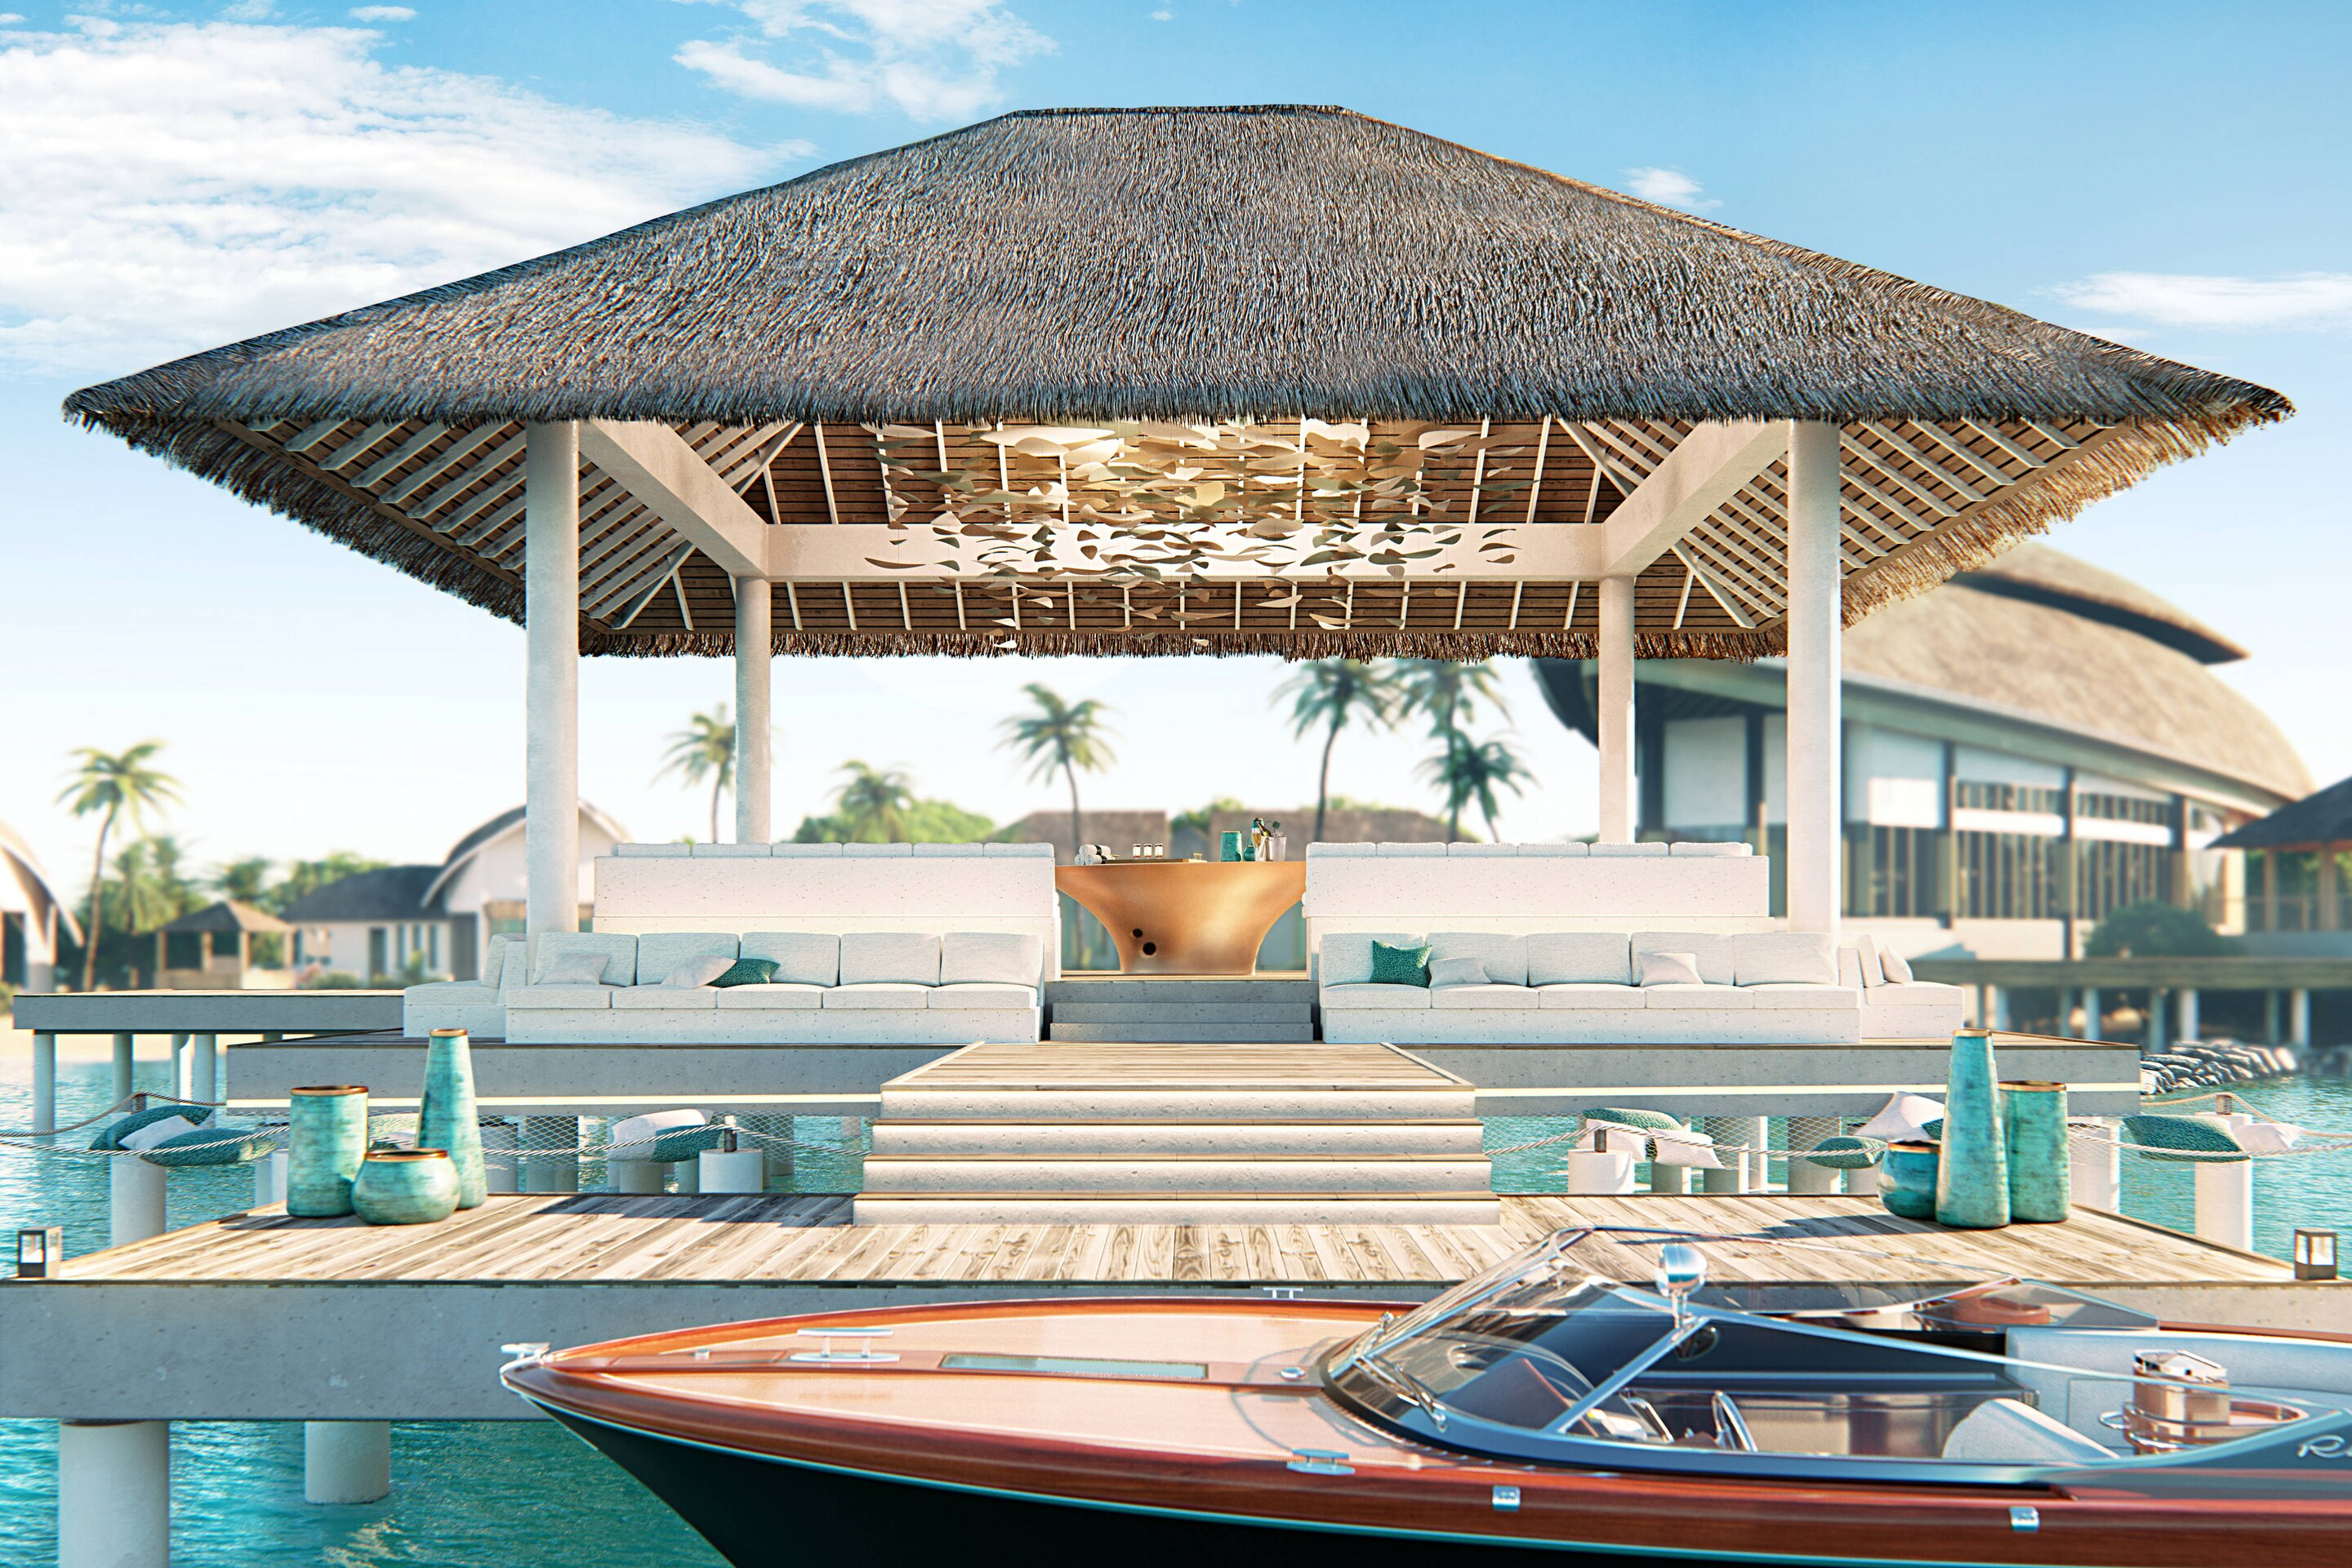 JW Marriott Maldives Resort and Spa